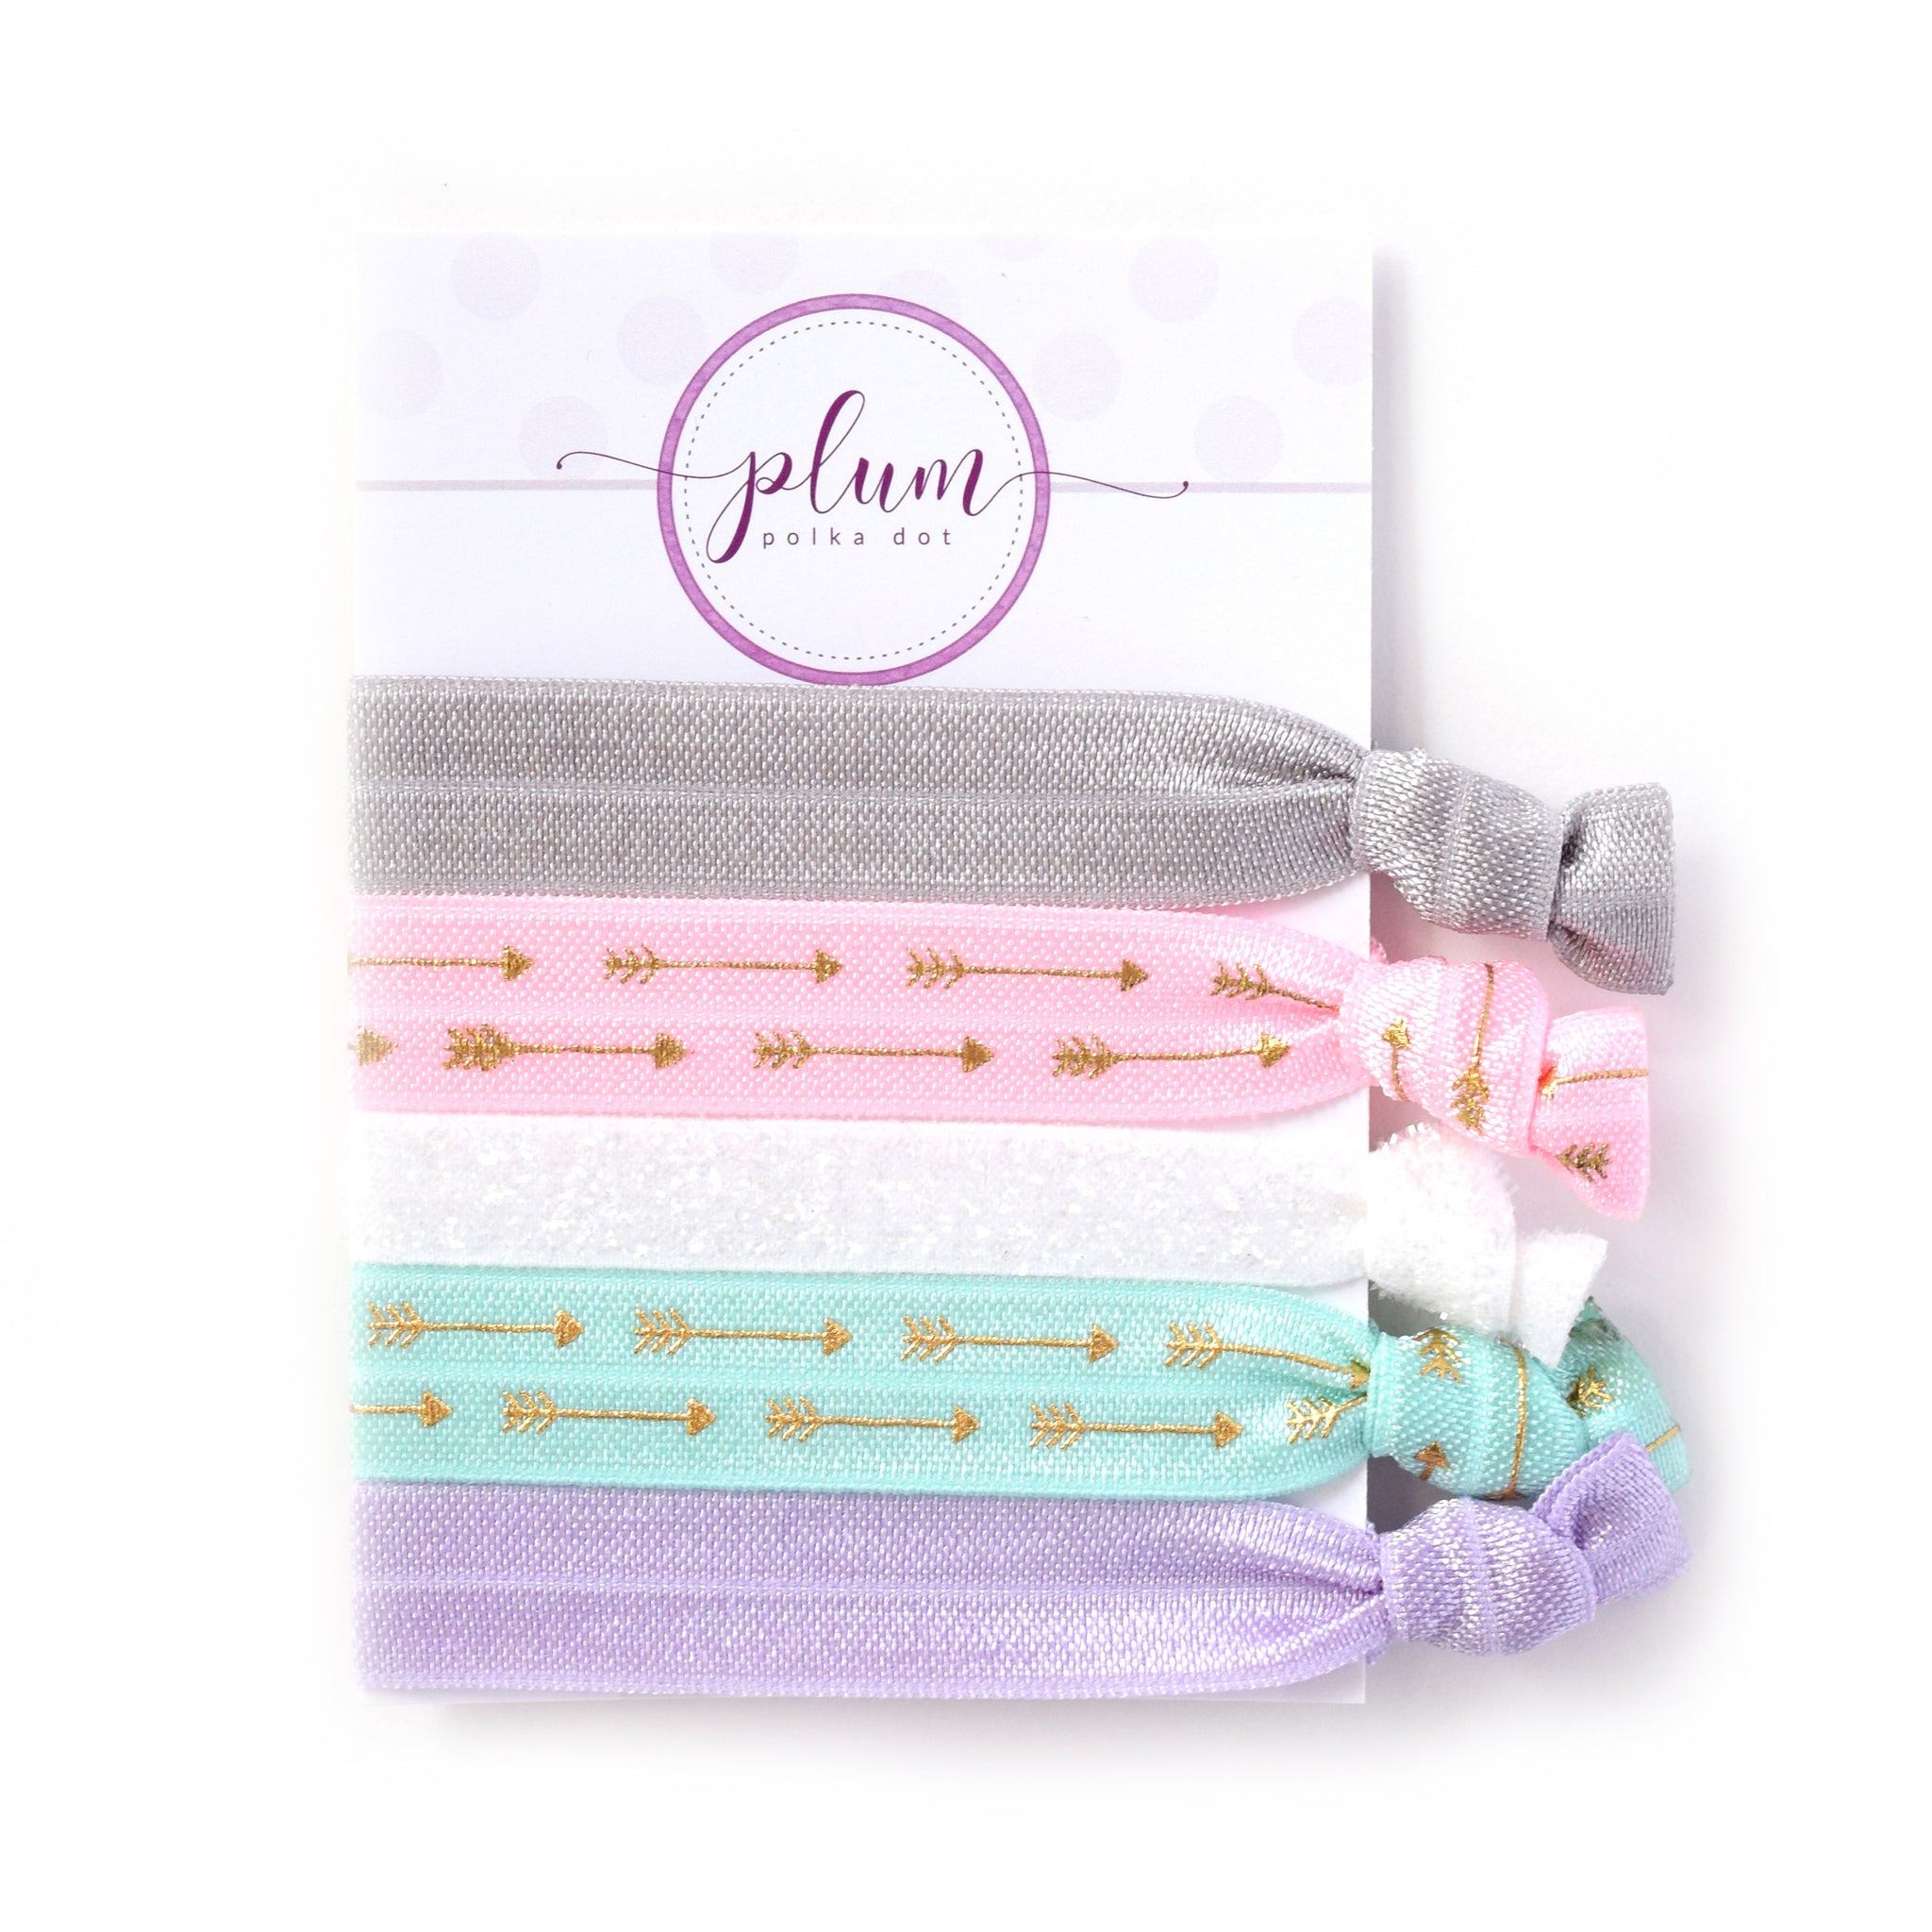 Pastel Hair Ties with Gold Arrows - Set of 5 - @PlumPolkaDot